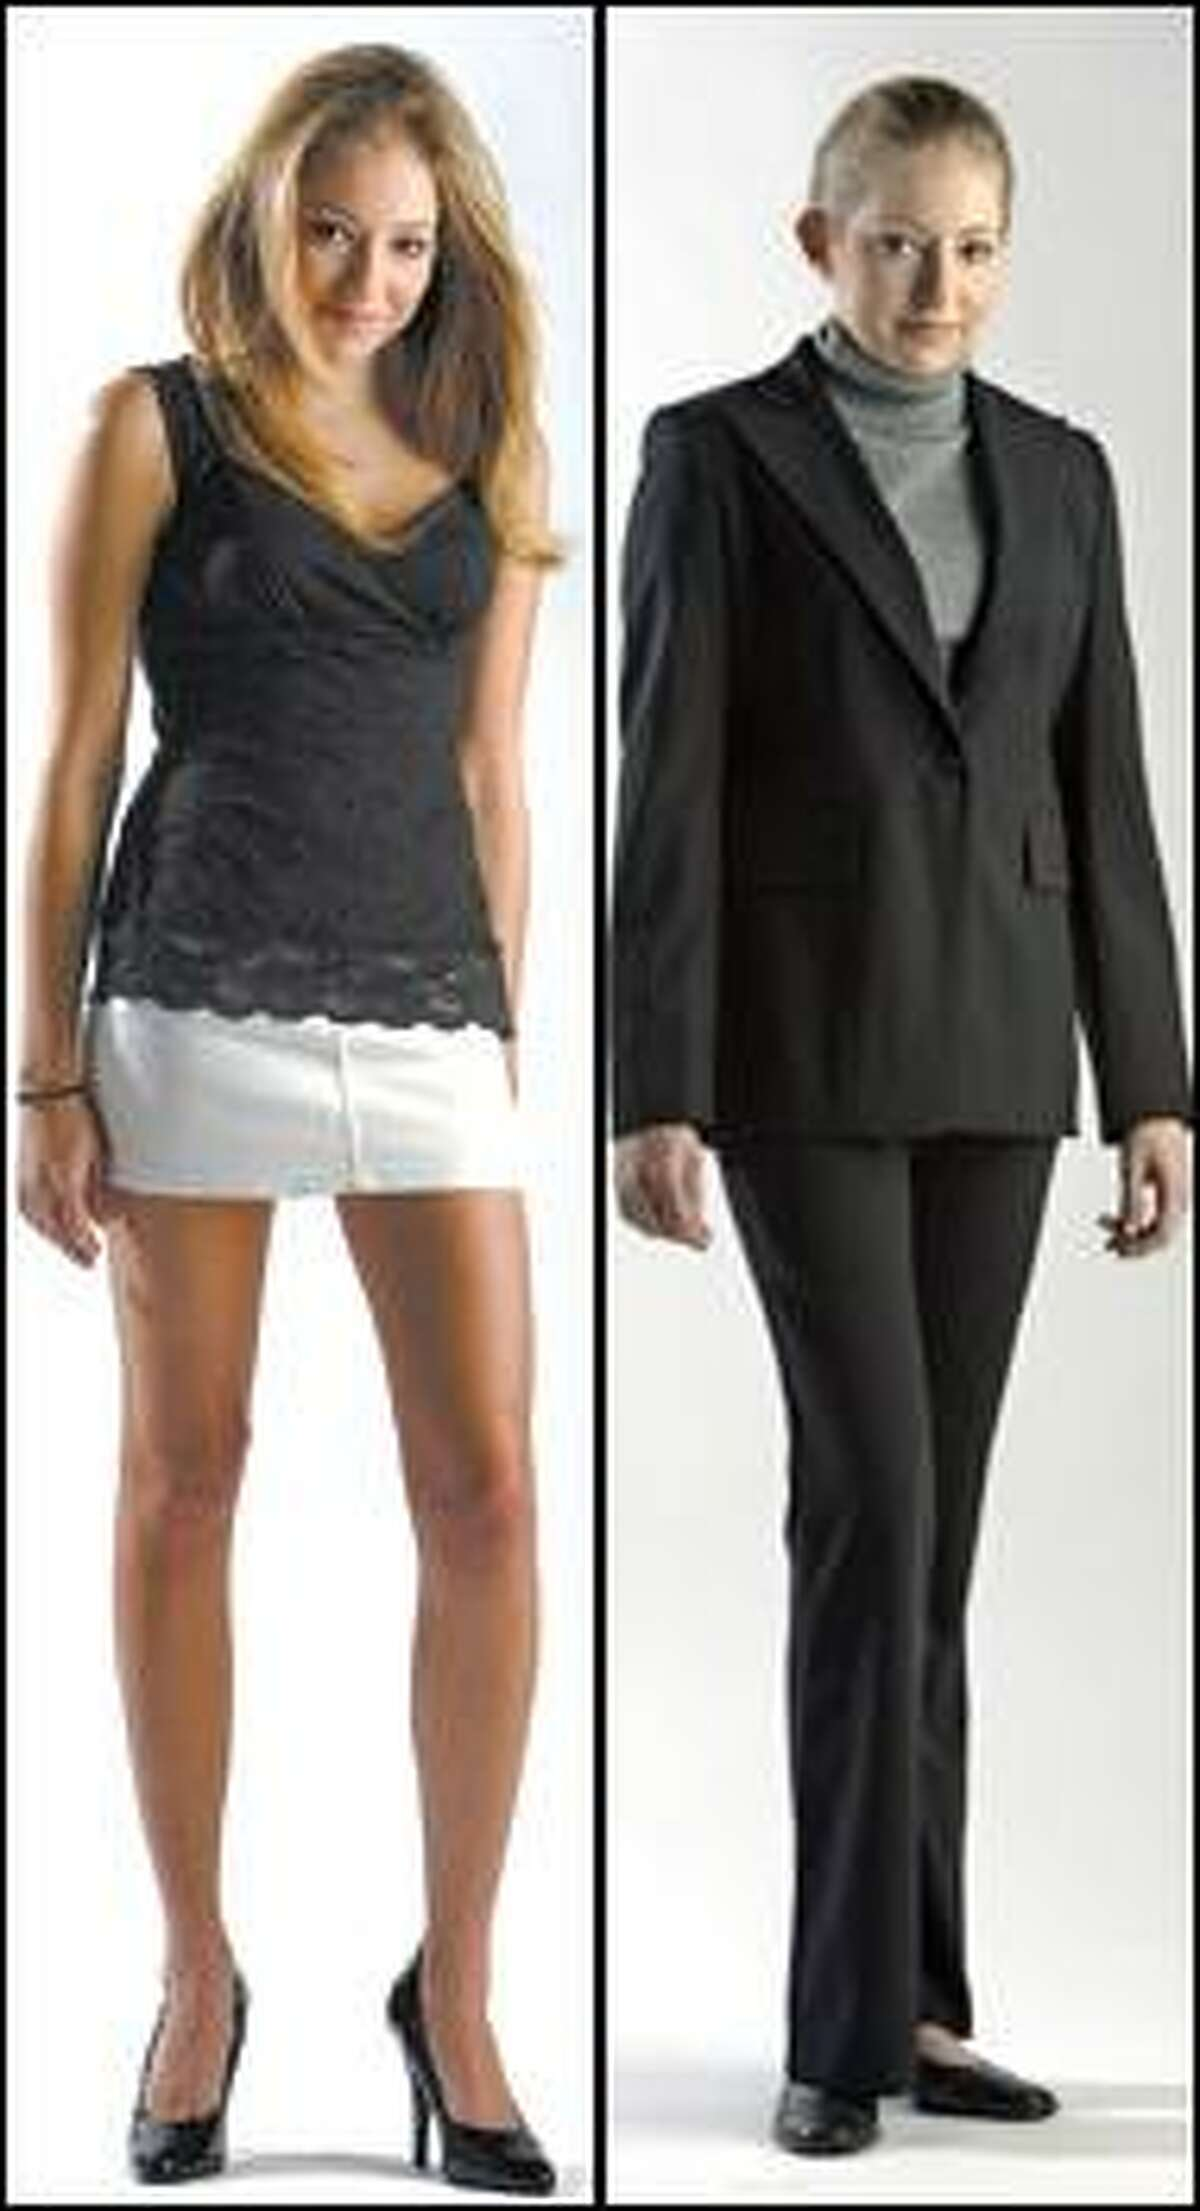 At left is an example of sexy attire that is not suitable in the workplace. A business suit is more appropriate, a study shows.